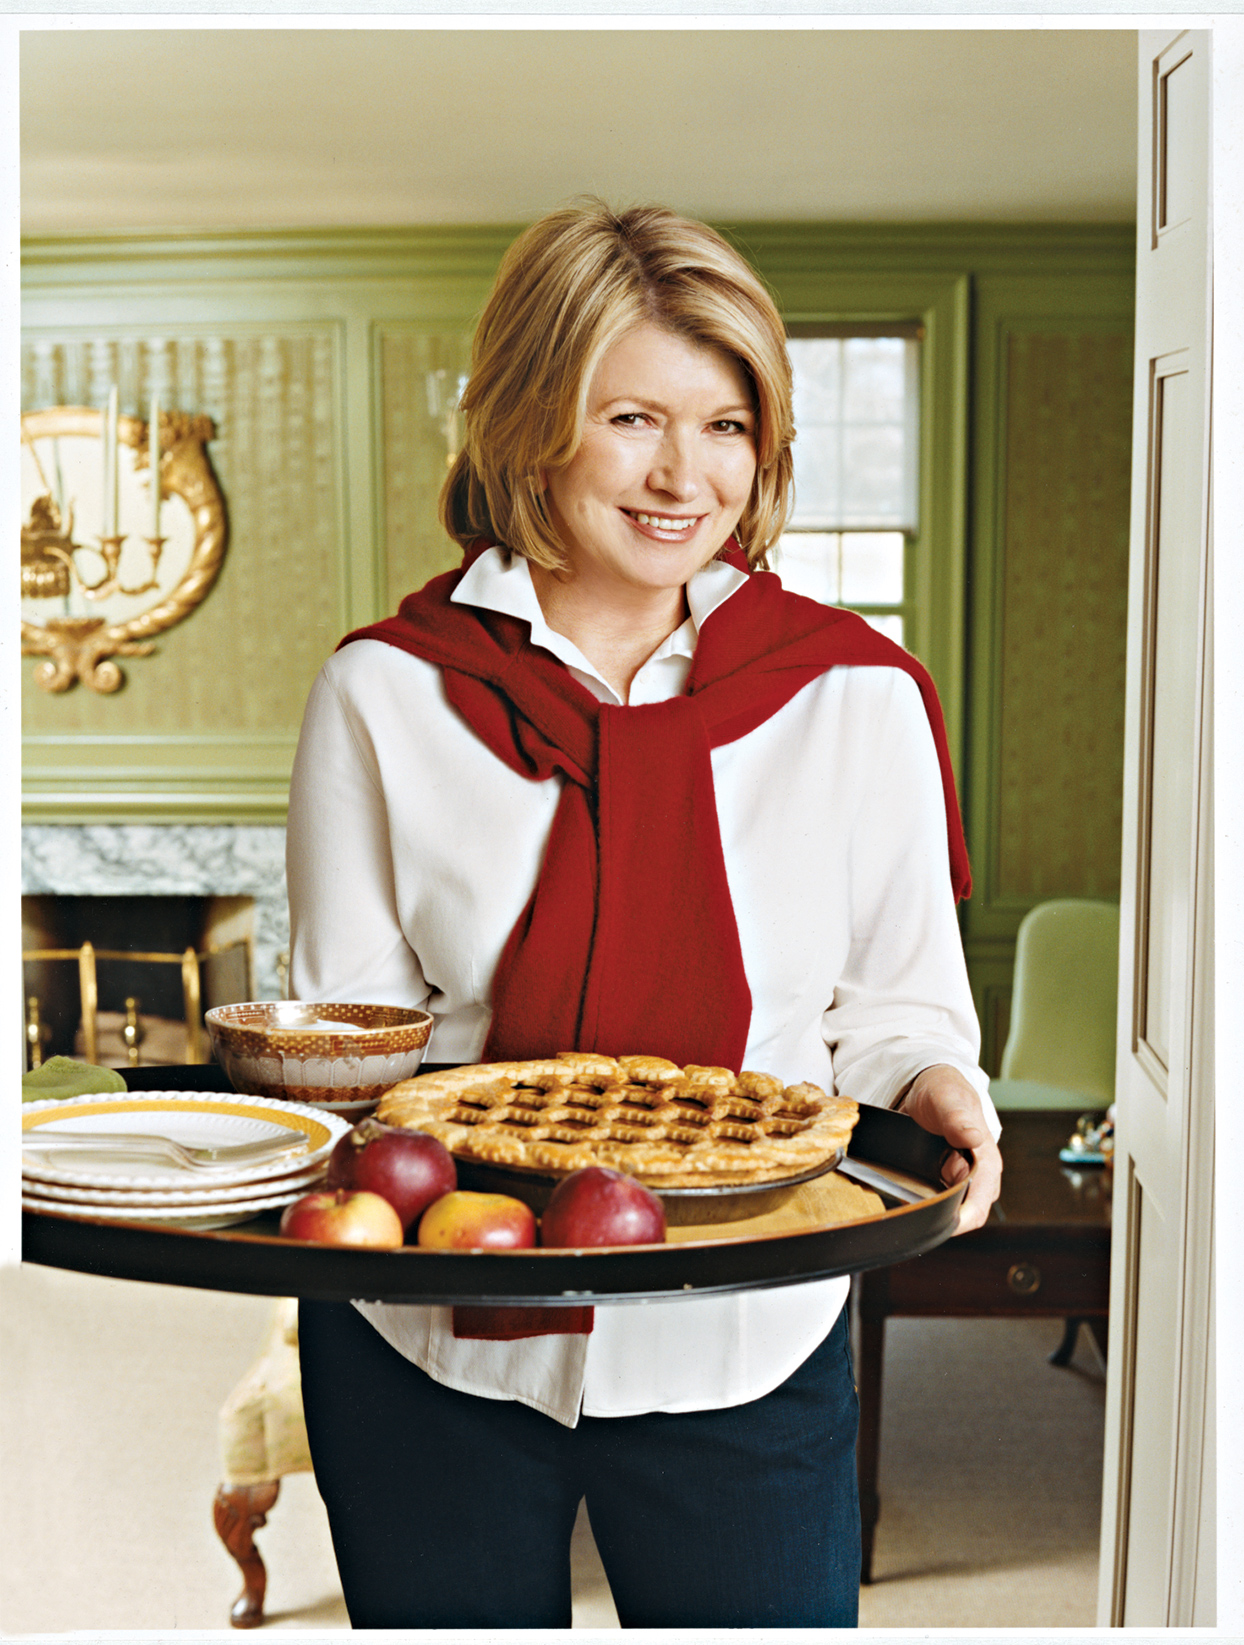 martha stewart holding tray with apple pie